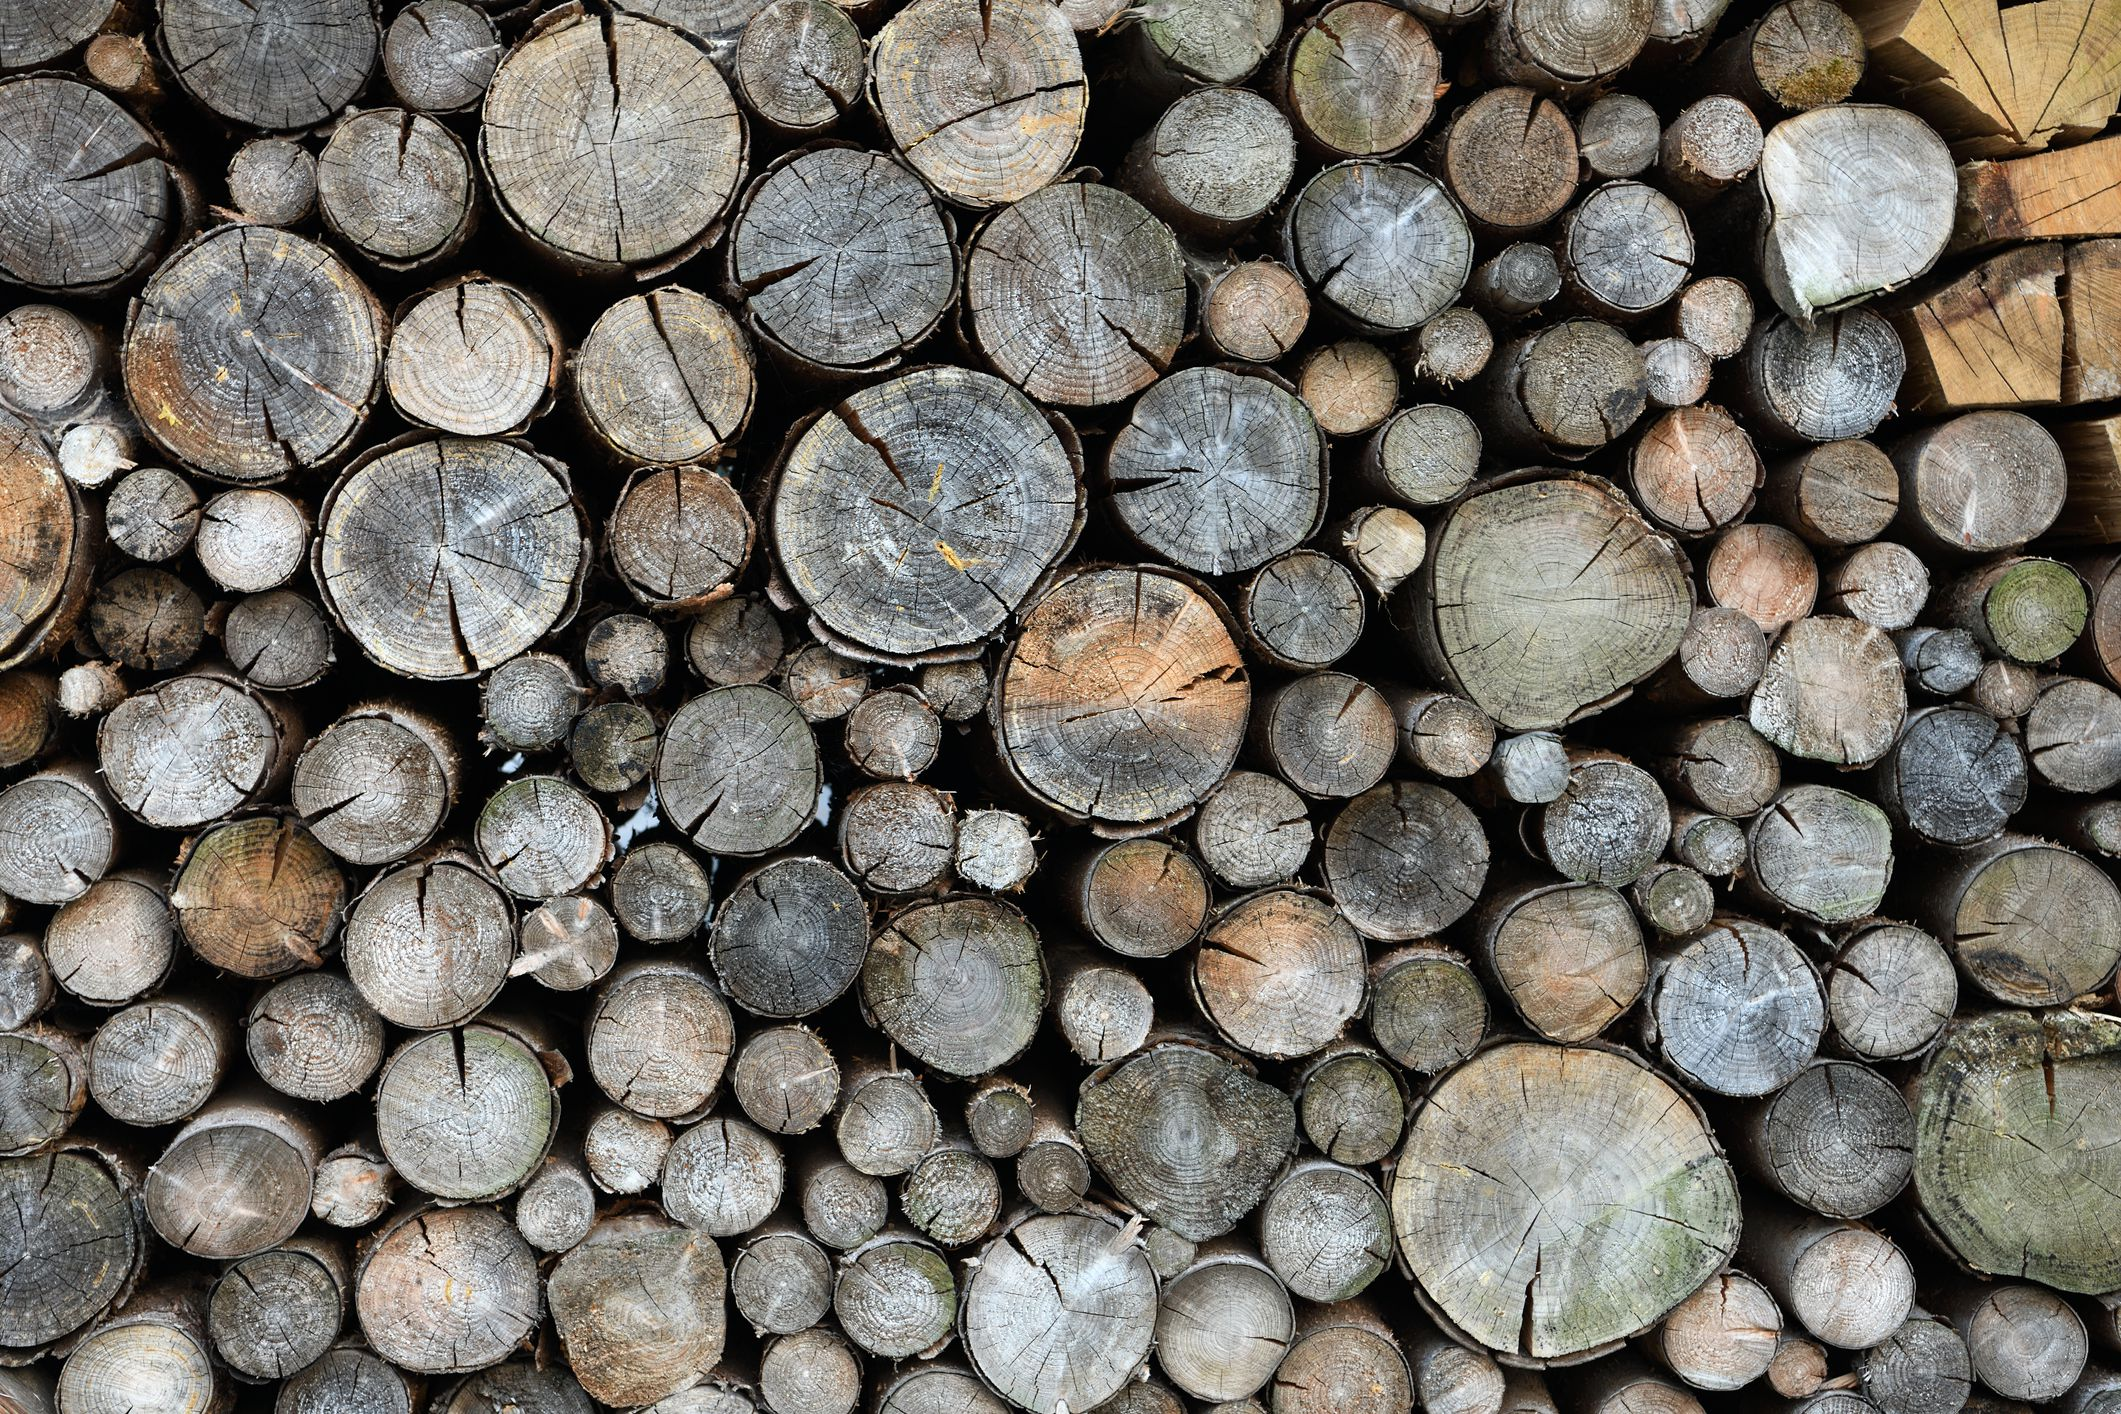 decorative indoor firewood rack outdoor fireplace wood.htm the best firewood for your wood stove or fireplace  firewood for your wood stove or fireplace